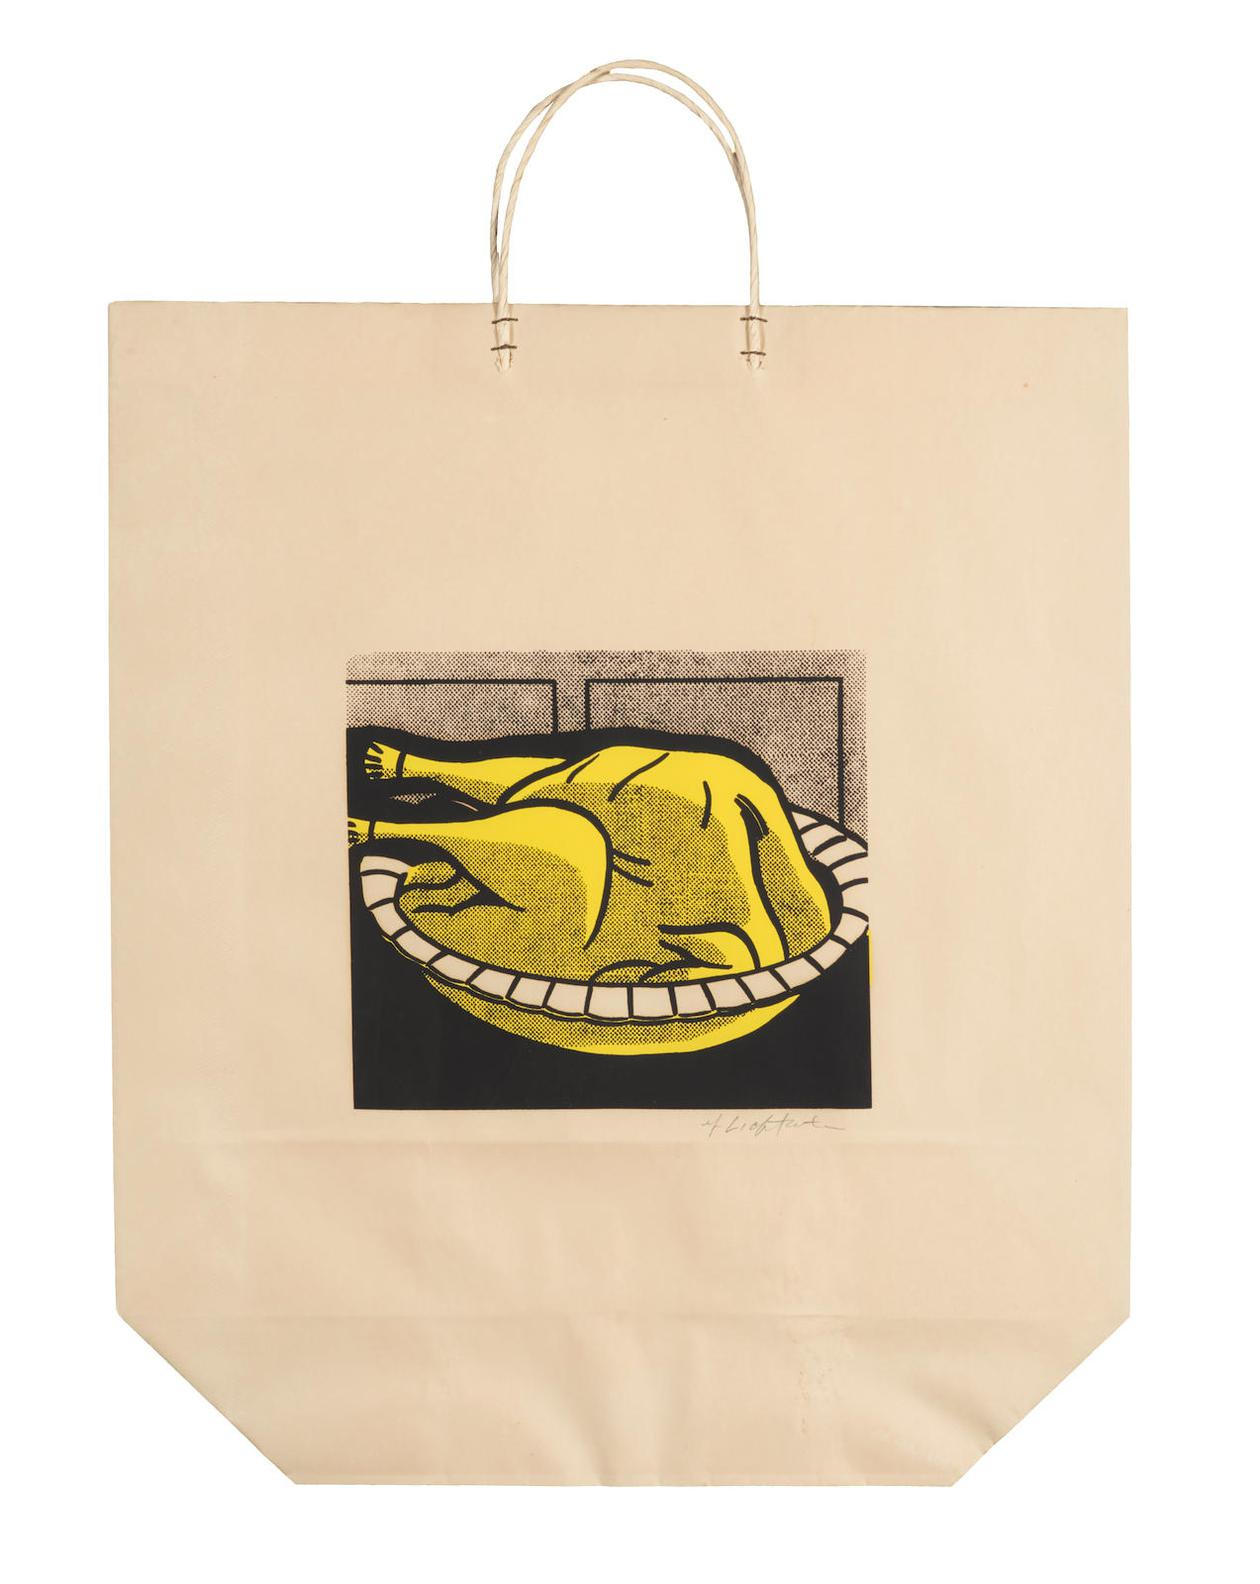 Roy Lichtenstein-Turkey Shopping Bag (C.App. 4)-1964